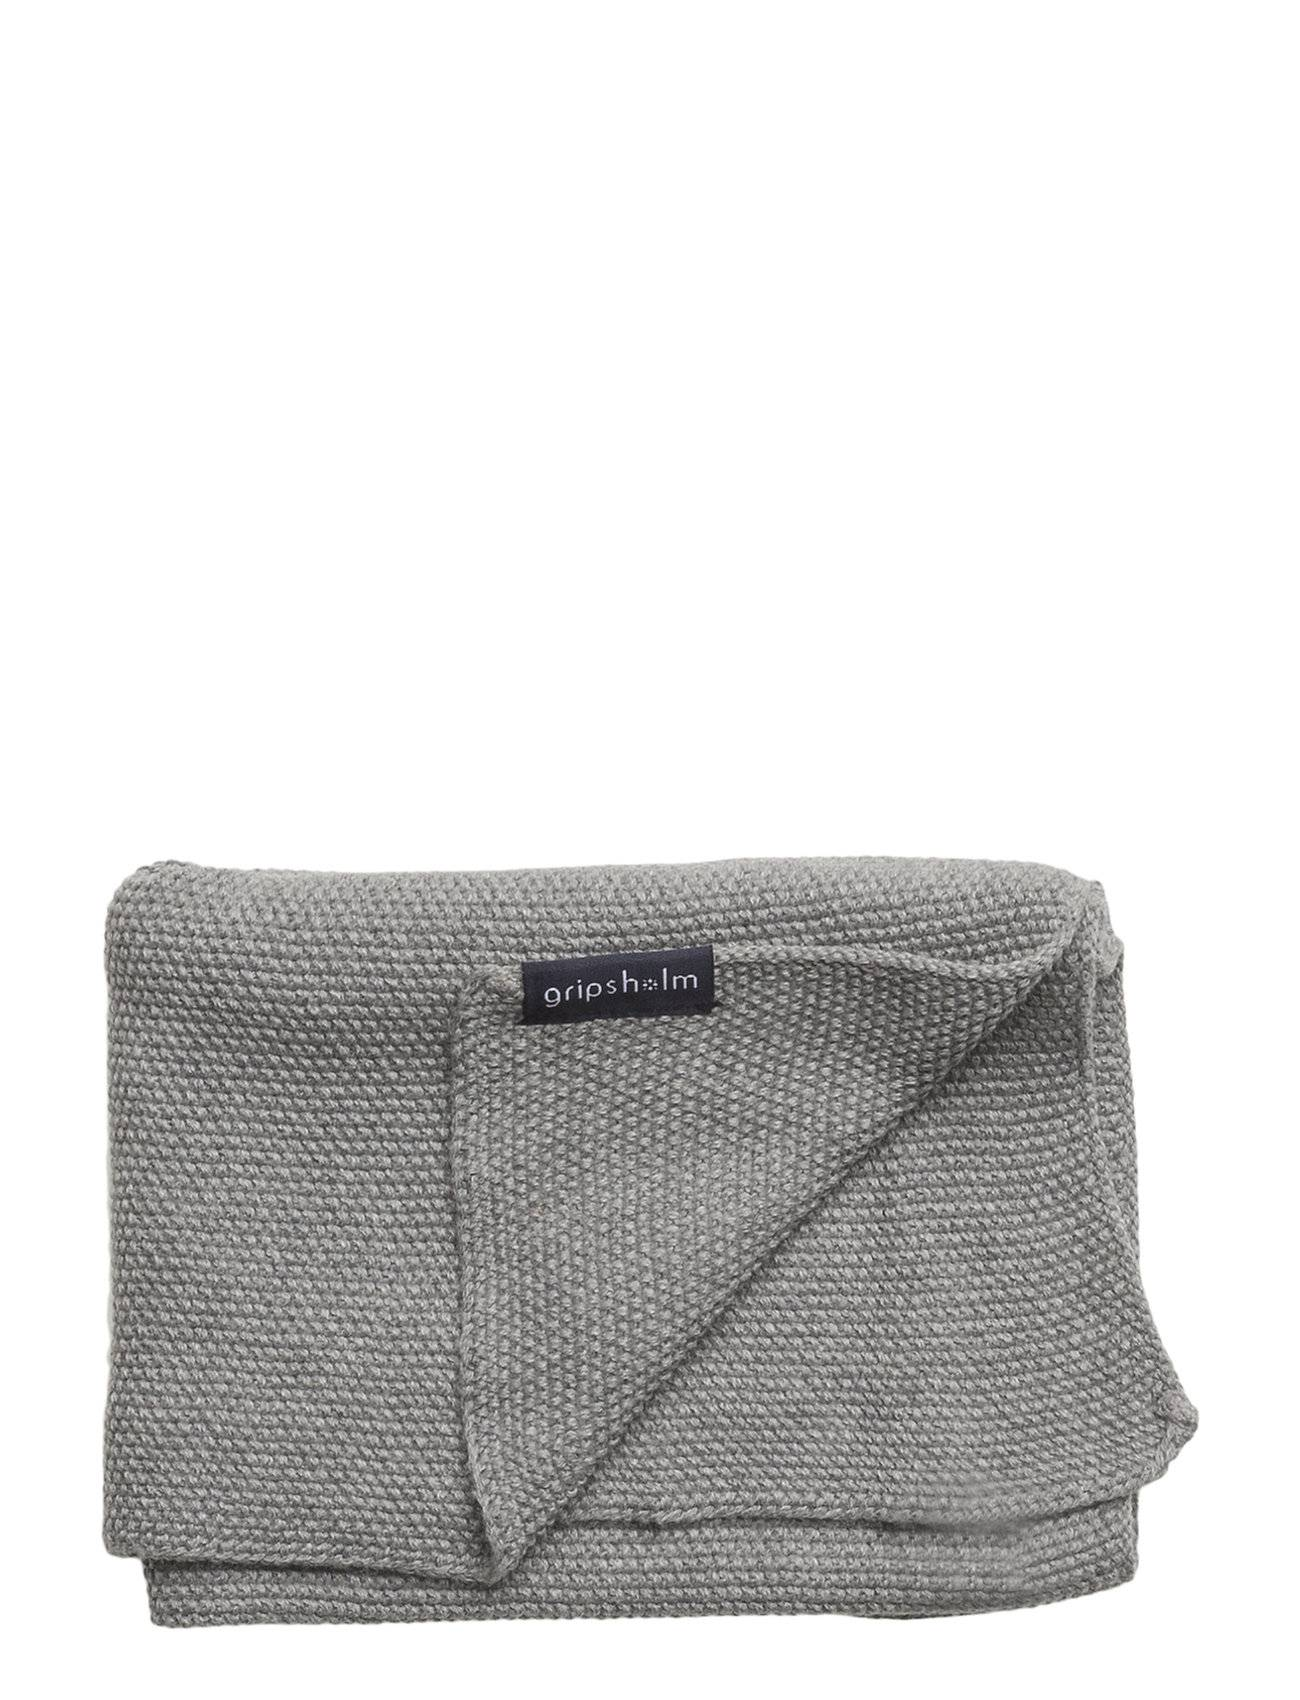 Gripsholm Kitchen Towel Knitted